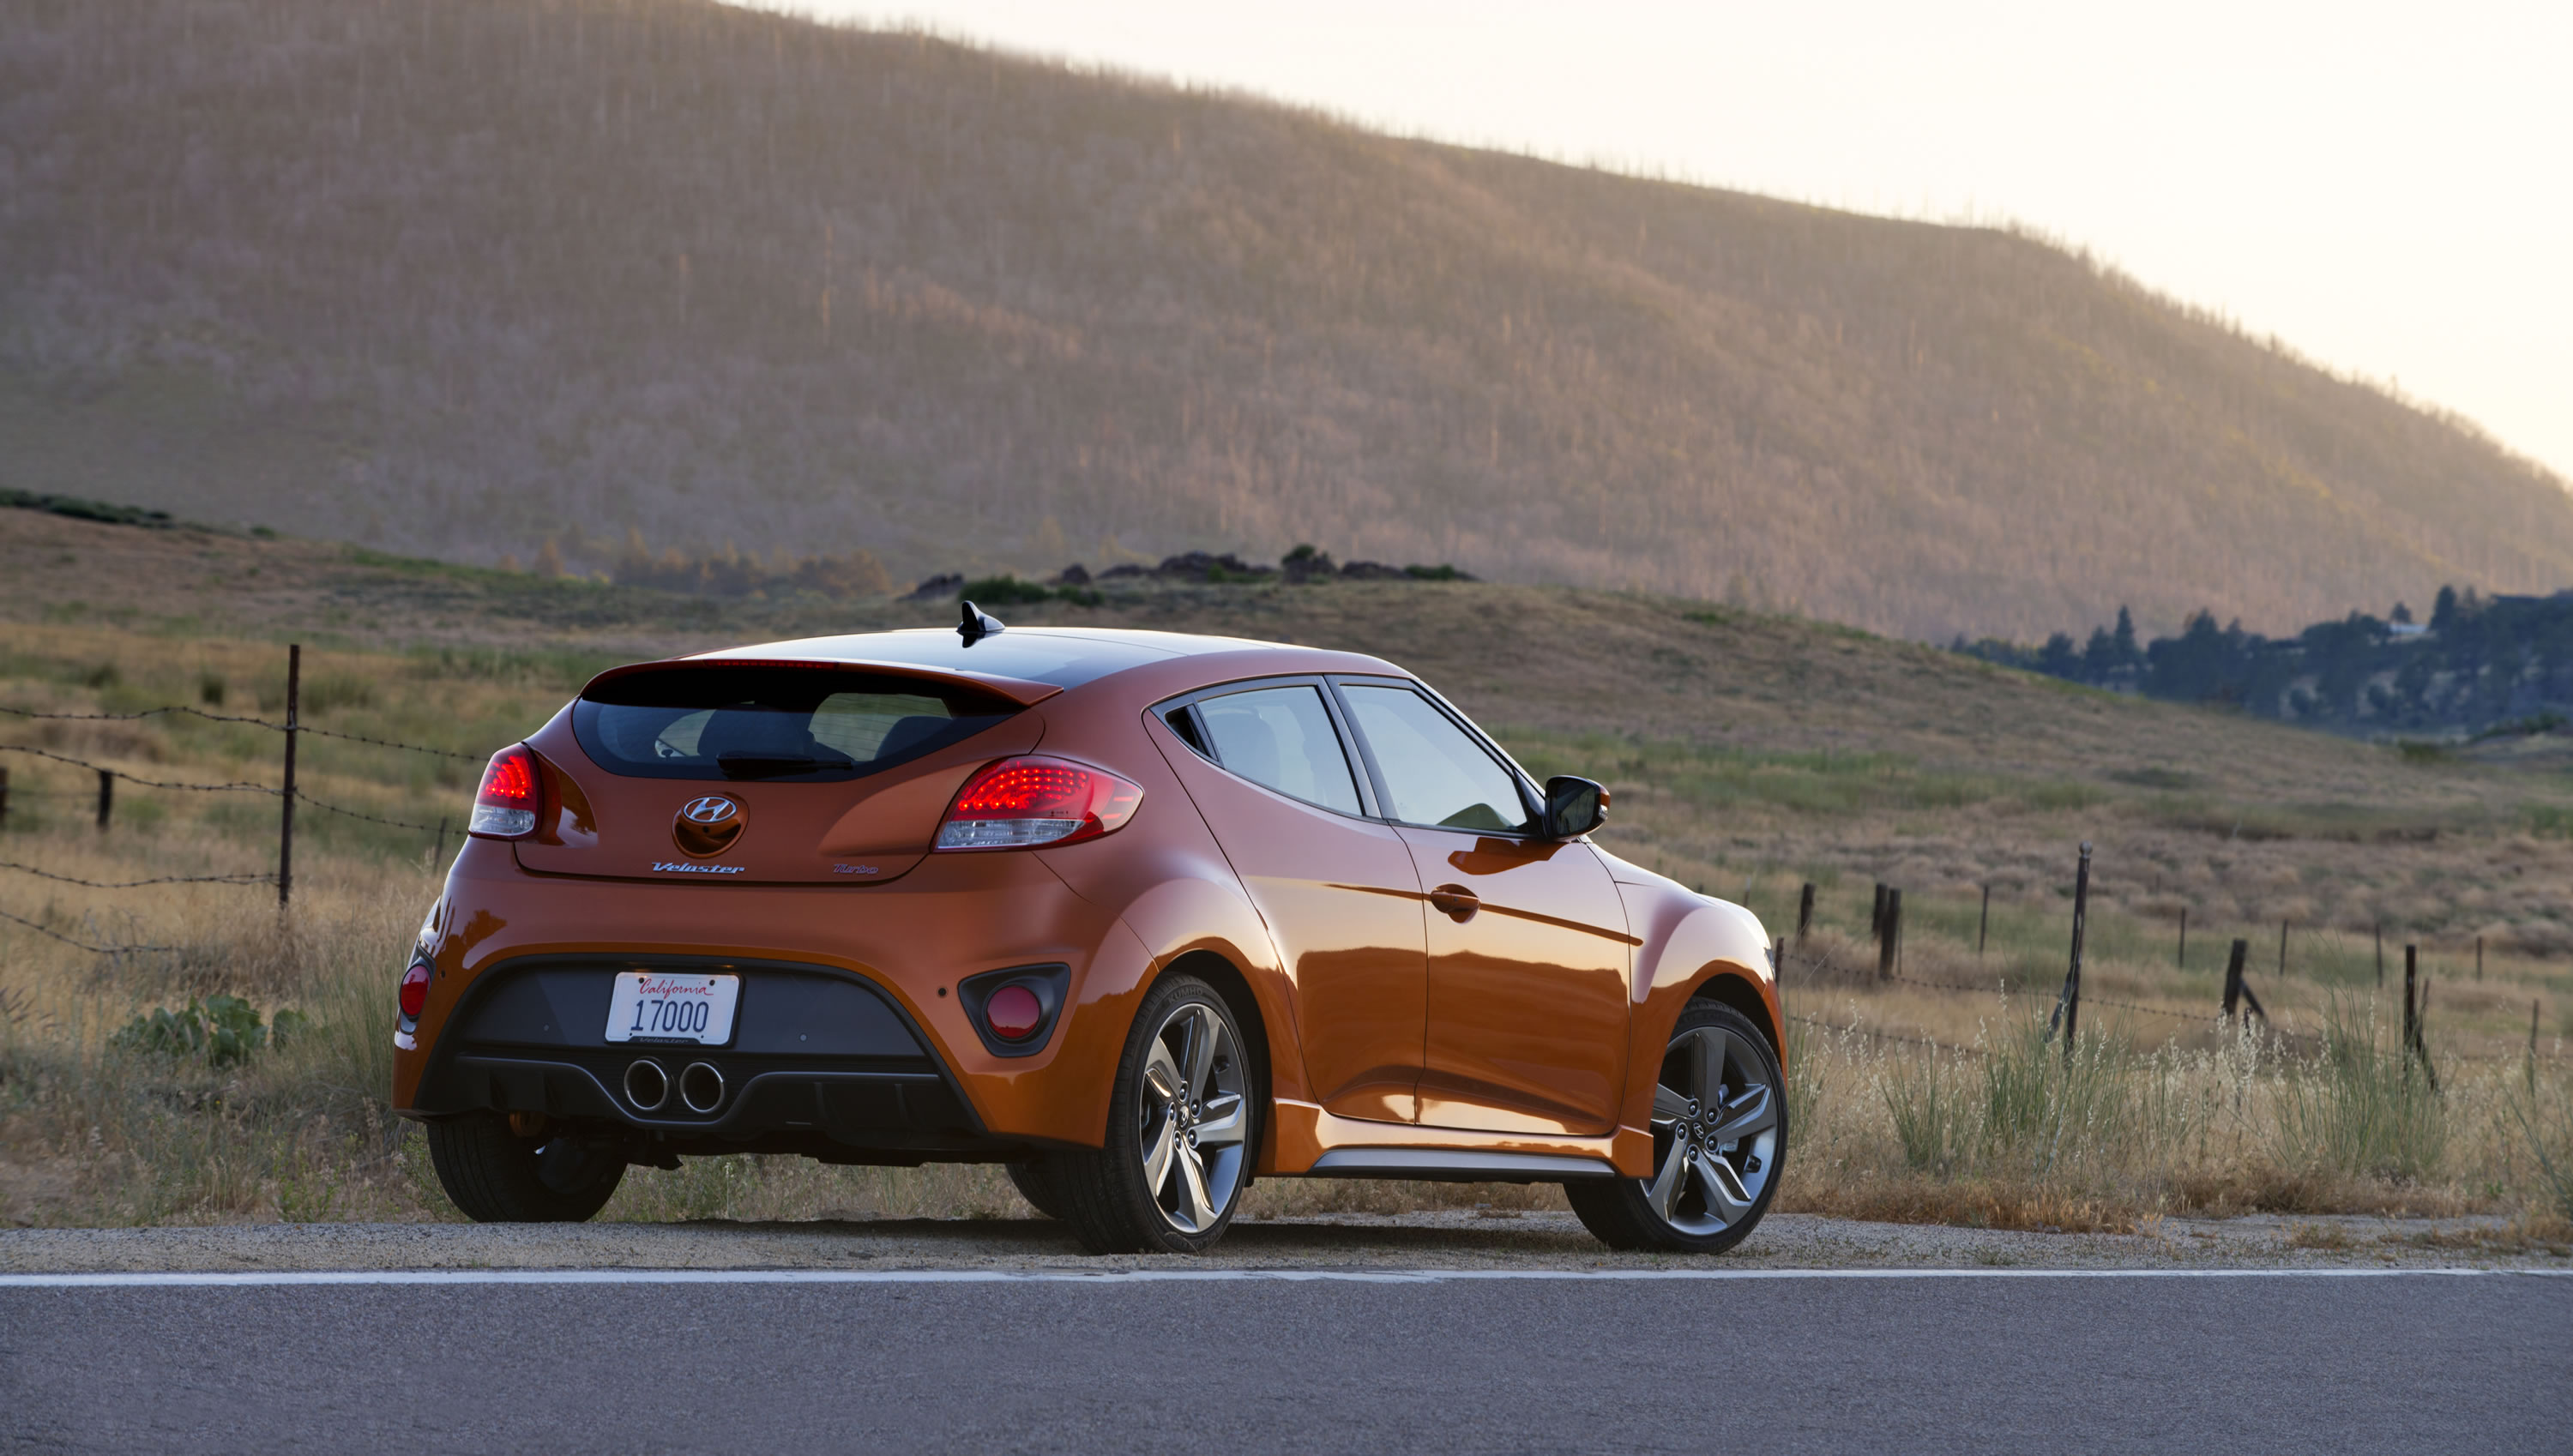 2014 hyundai veloster turbo photos specs and review rs